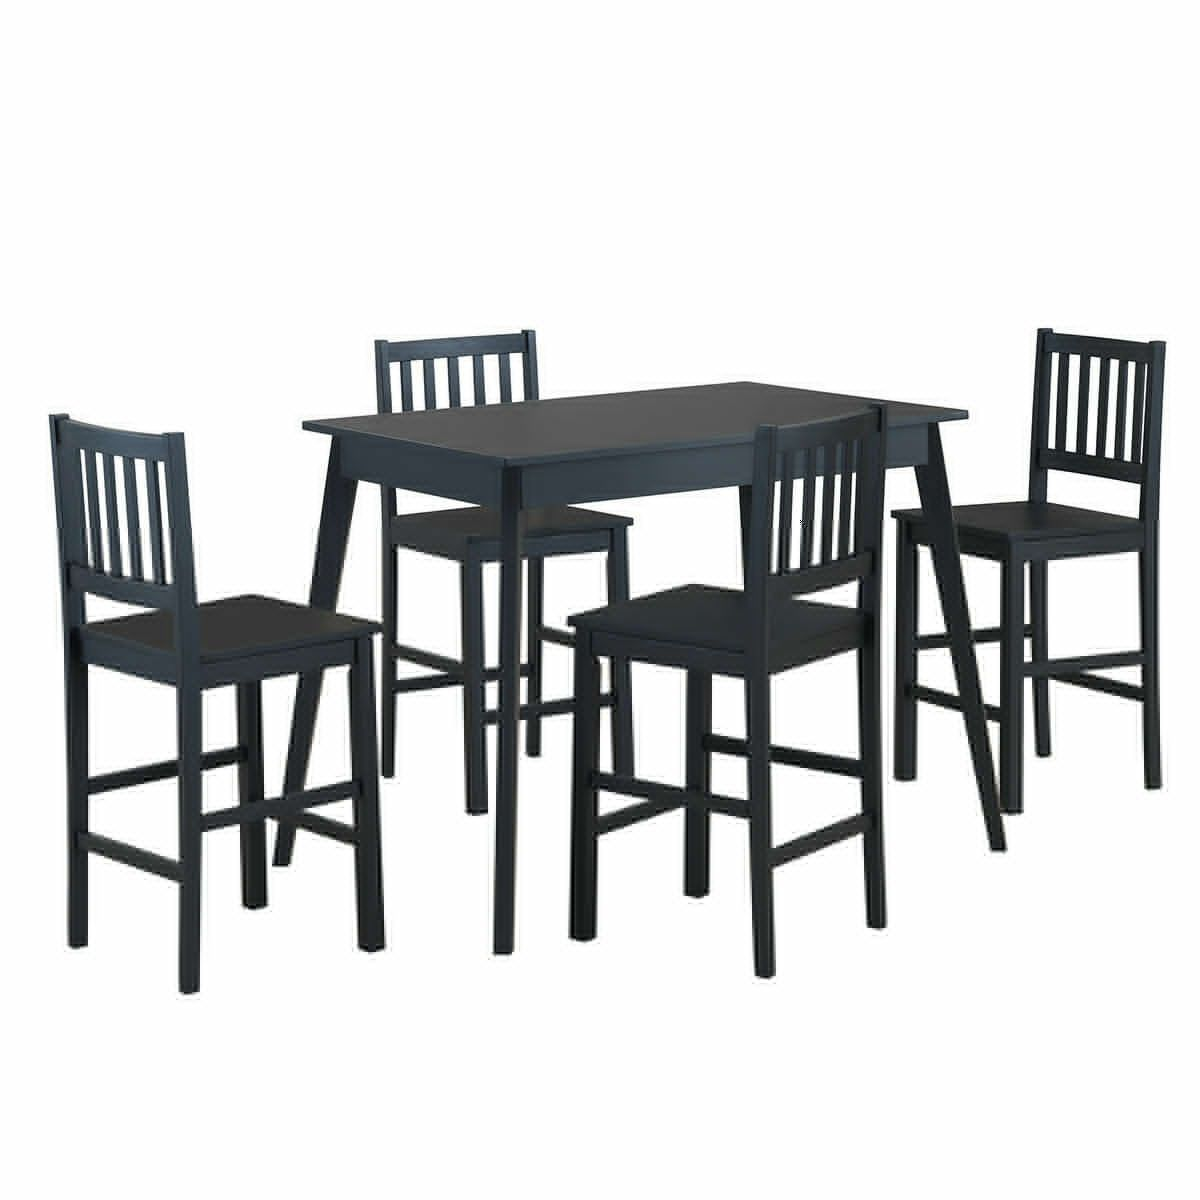 5 Piece Counter Height Dining Set Kitchen Table Counter Dining Height Kitchen Pie Counter Height Dining Sets Wood Dining Table Counter Height Kitchen Table [ 1200 x 1200 Pixel ]